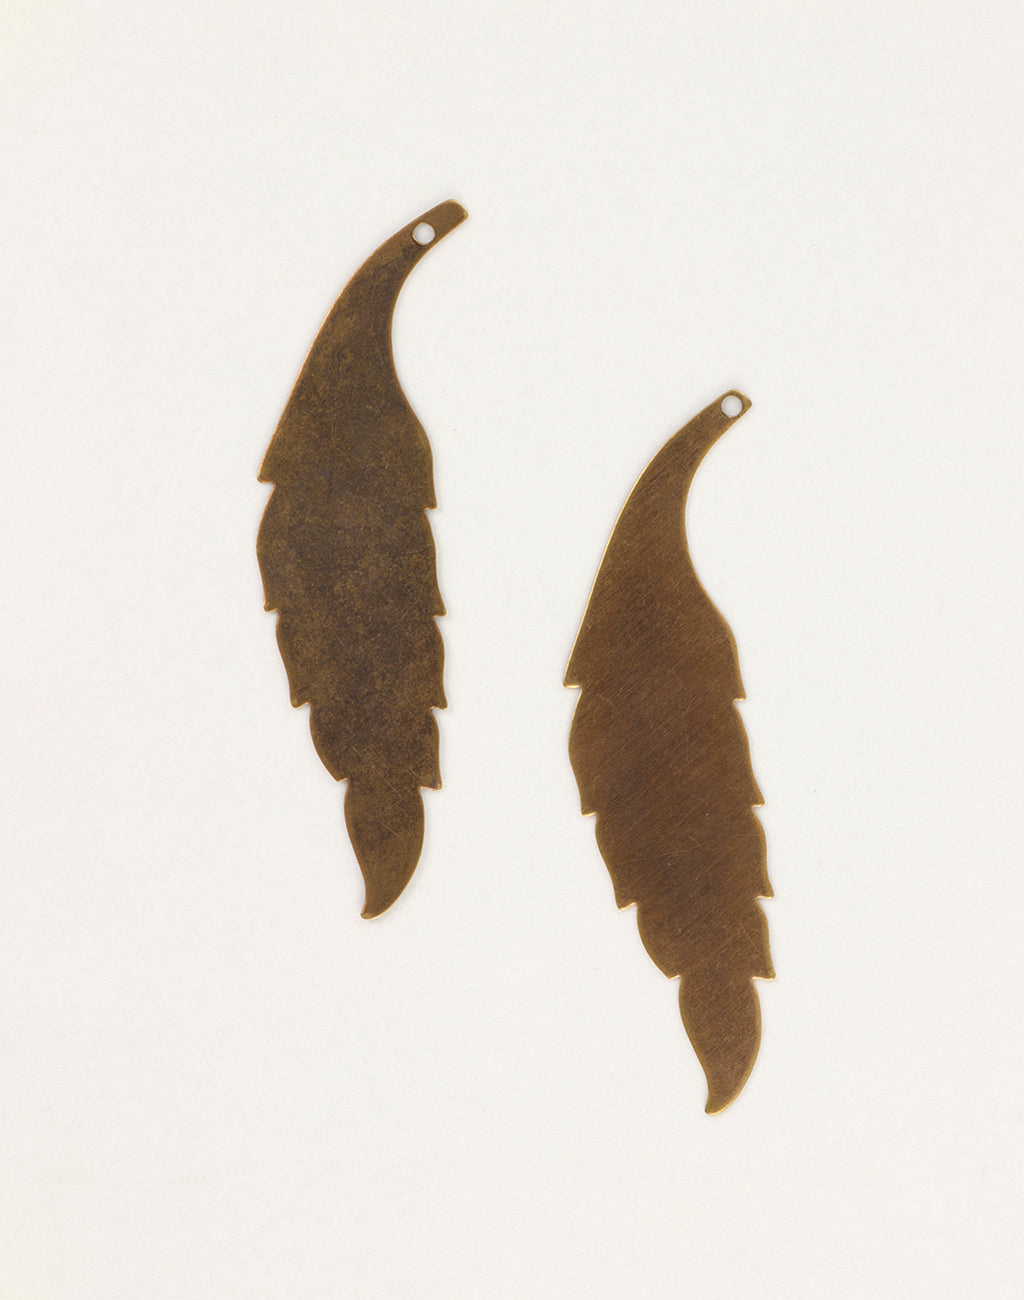 Slender Leaf, 60x15mm, (2pcs)